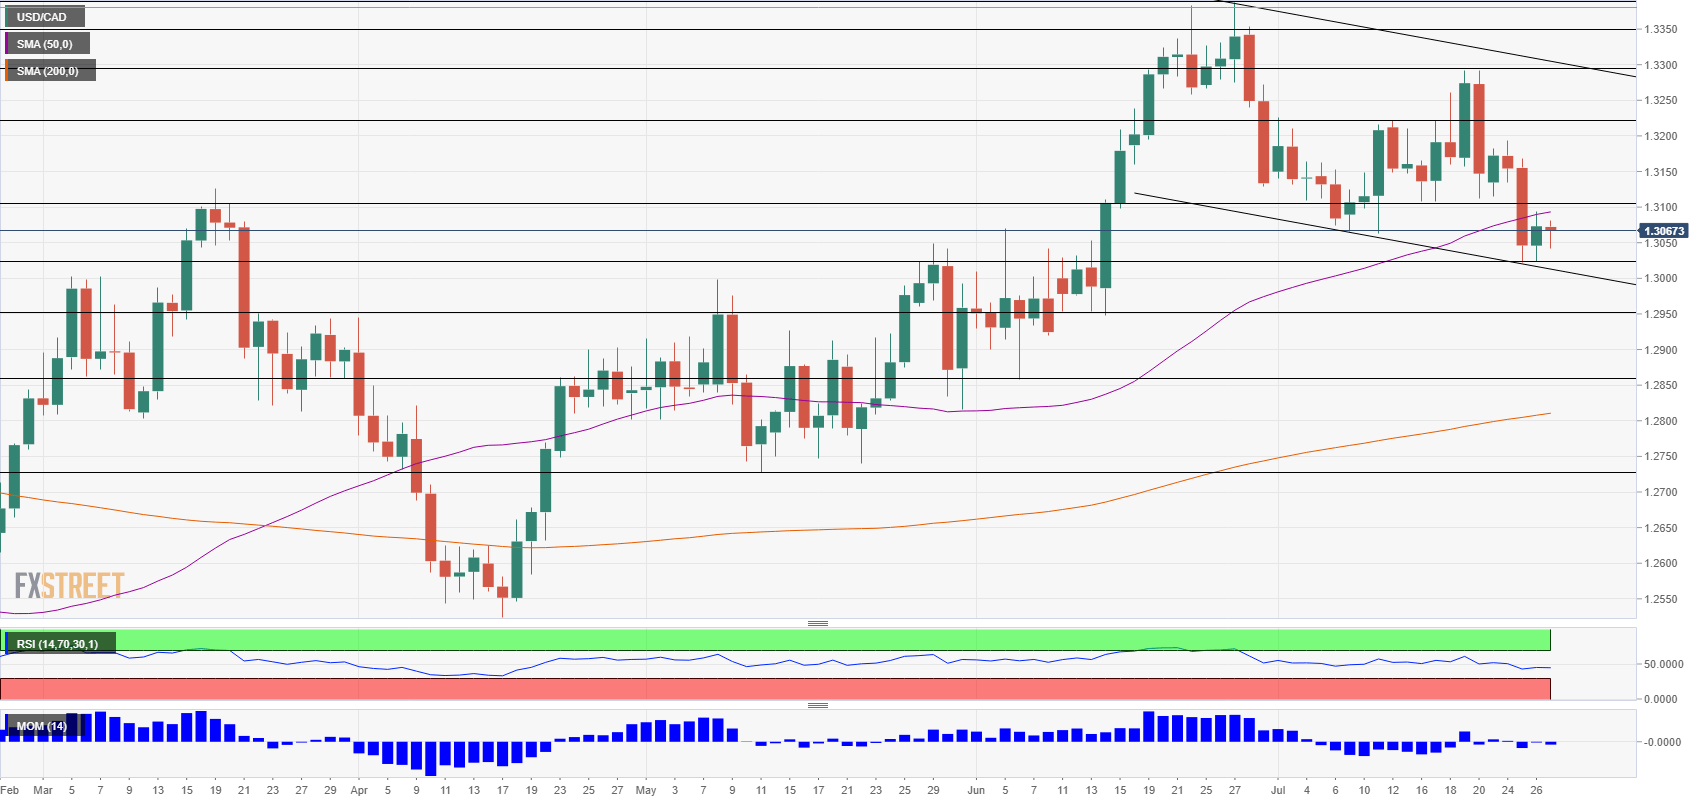 USD CAD technical analysis July 27 August 3 2018